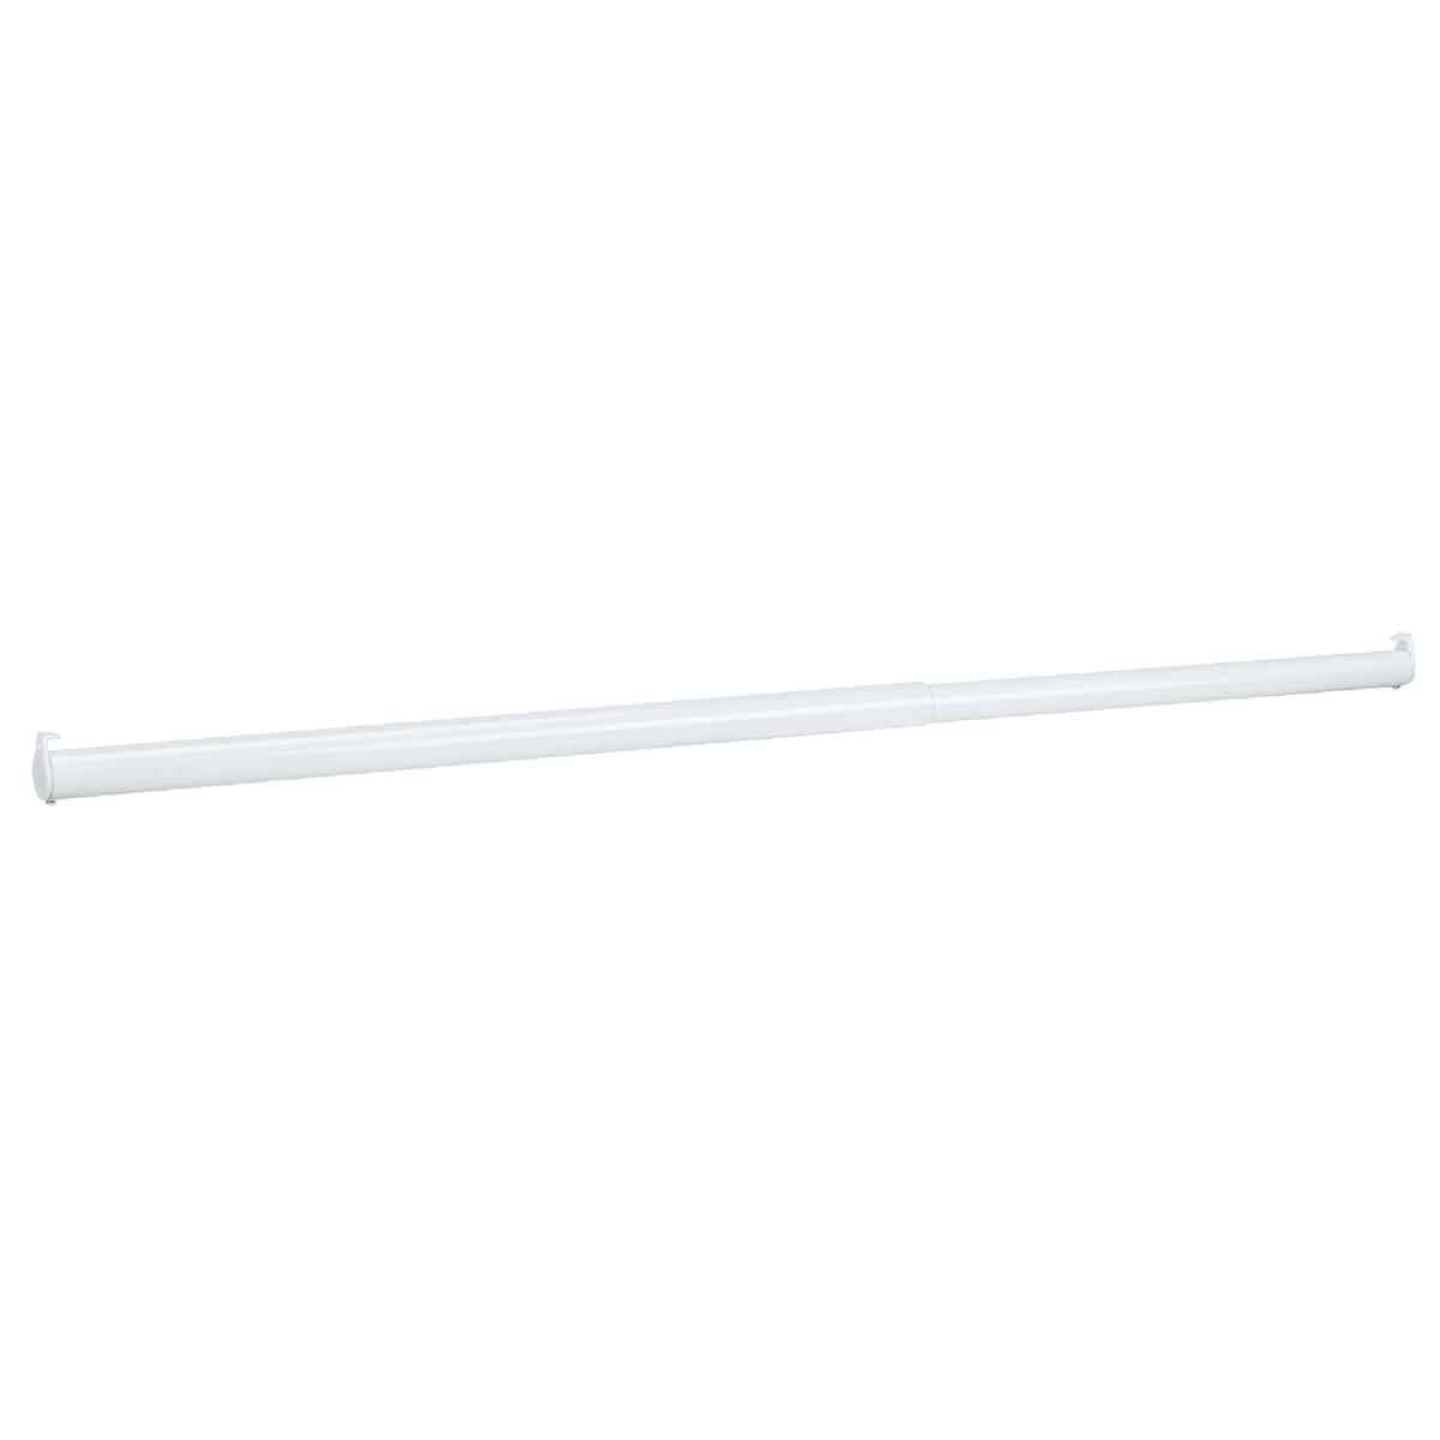 John Sterling Closet-Pro 30 In. to 48 In. x 1-1/4 In. Extra Heavy-Duty Adjustable Closet Rod, White Image 1